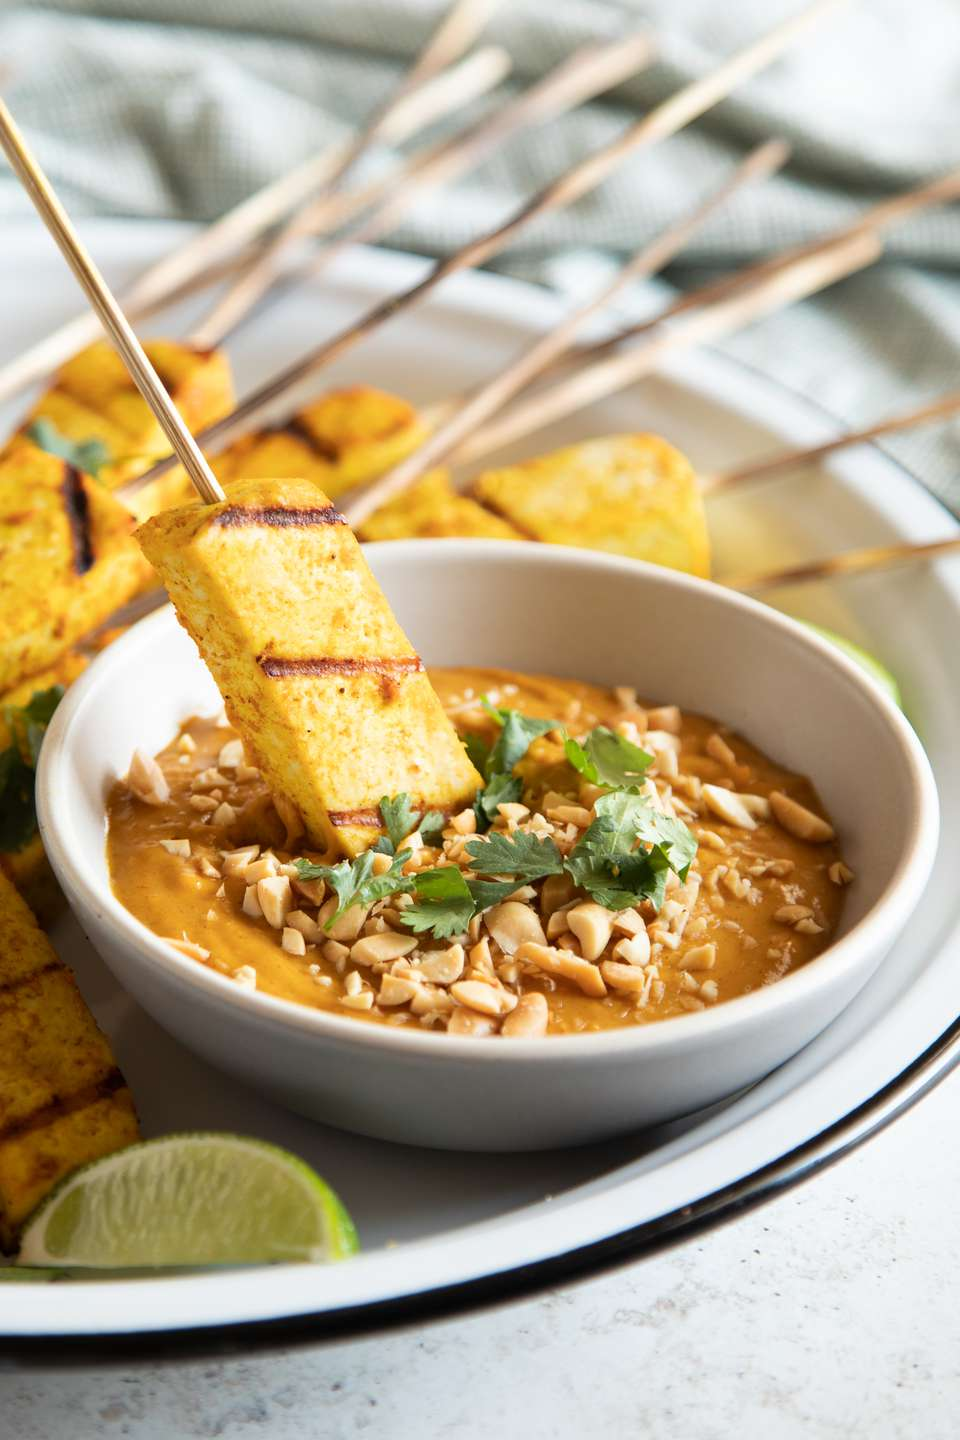 Grilled tofu skewers with spicy peanut sauce with one skewer dipped in sauce.